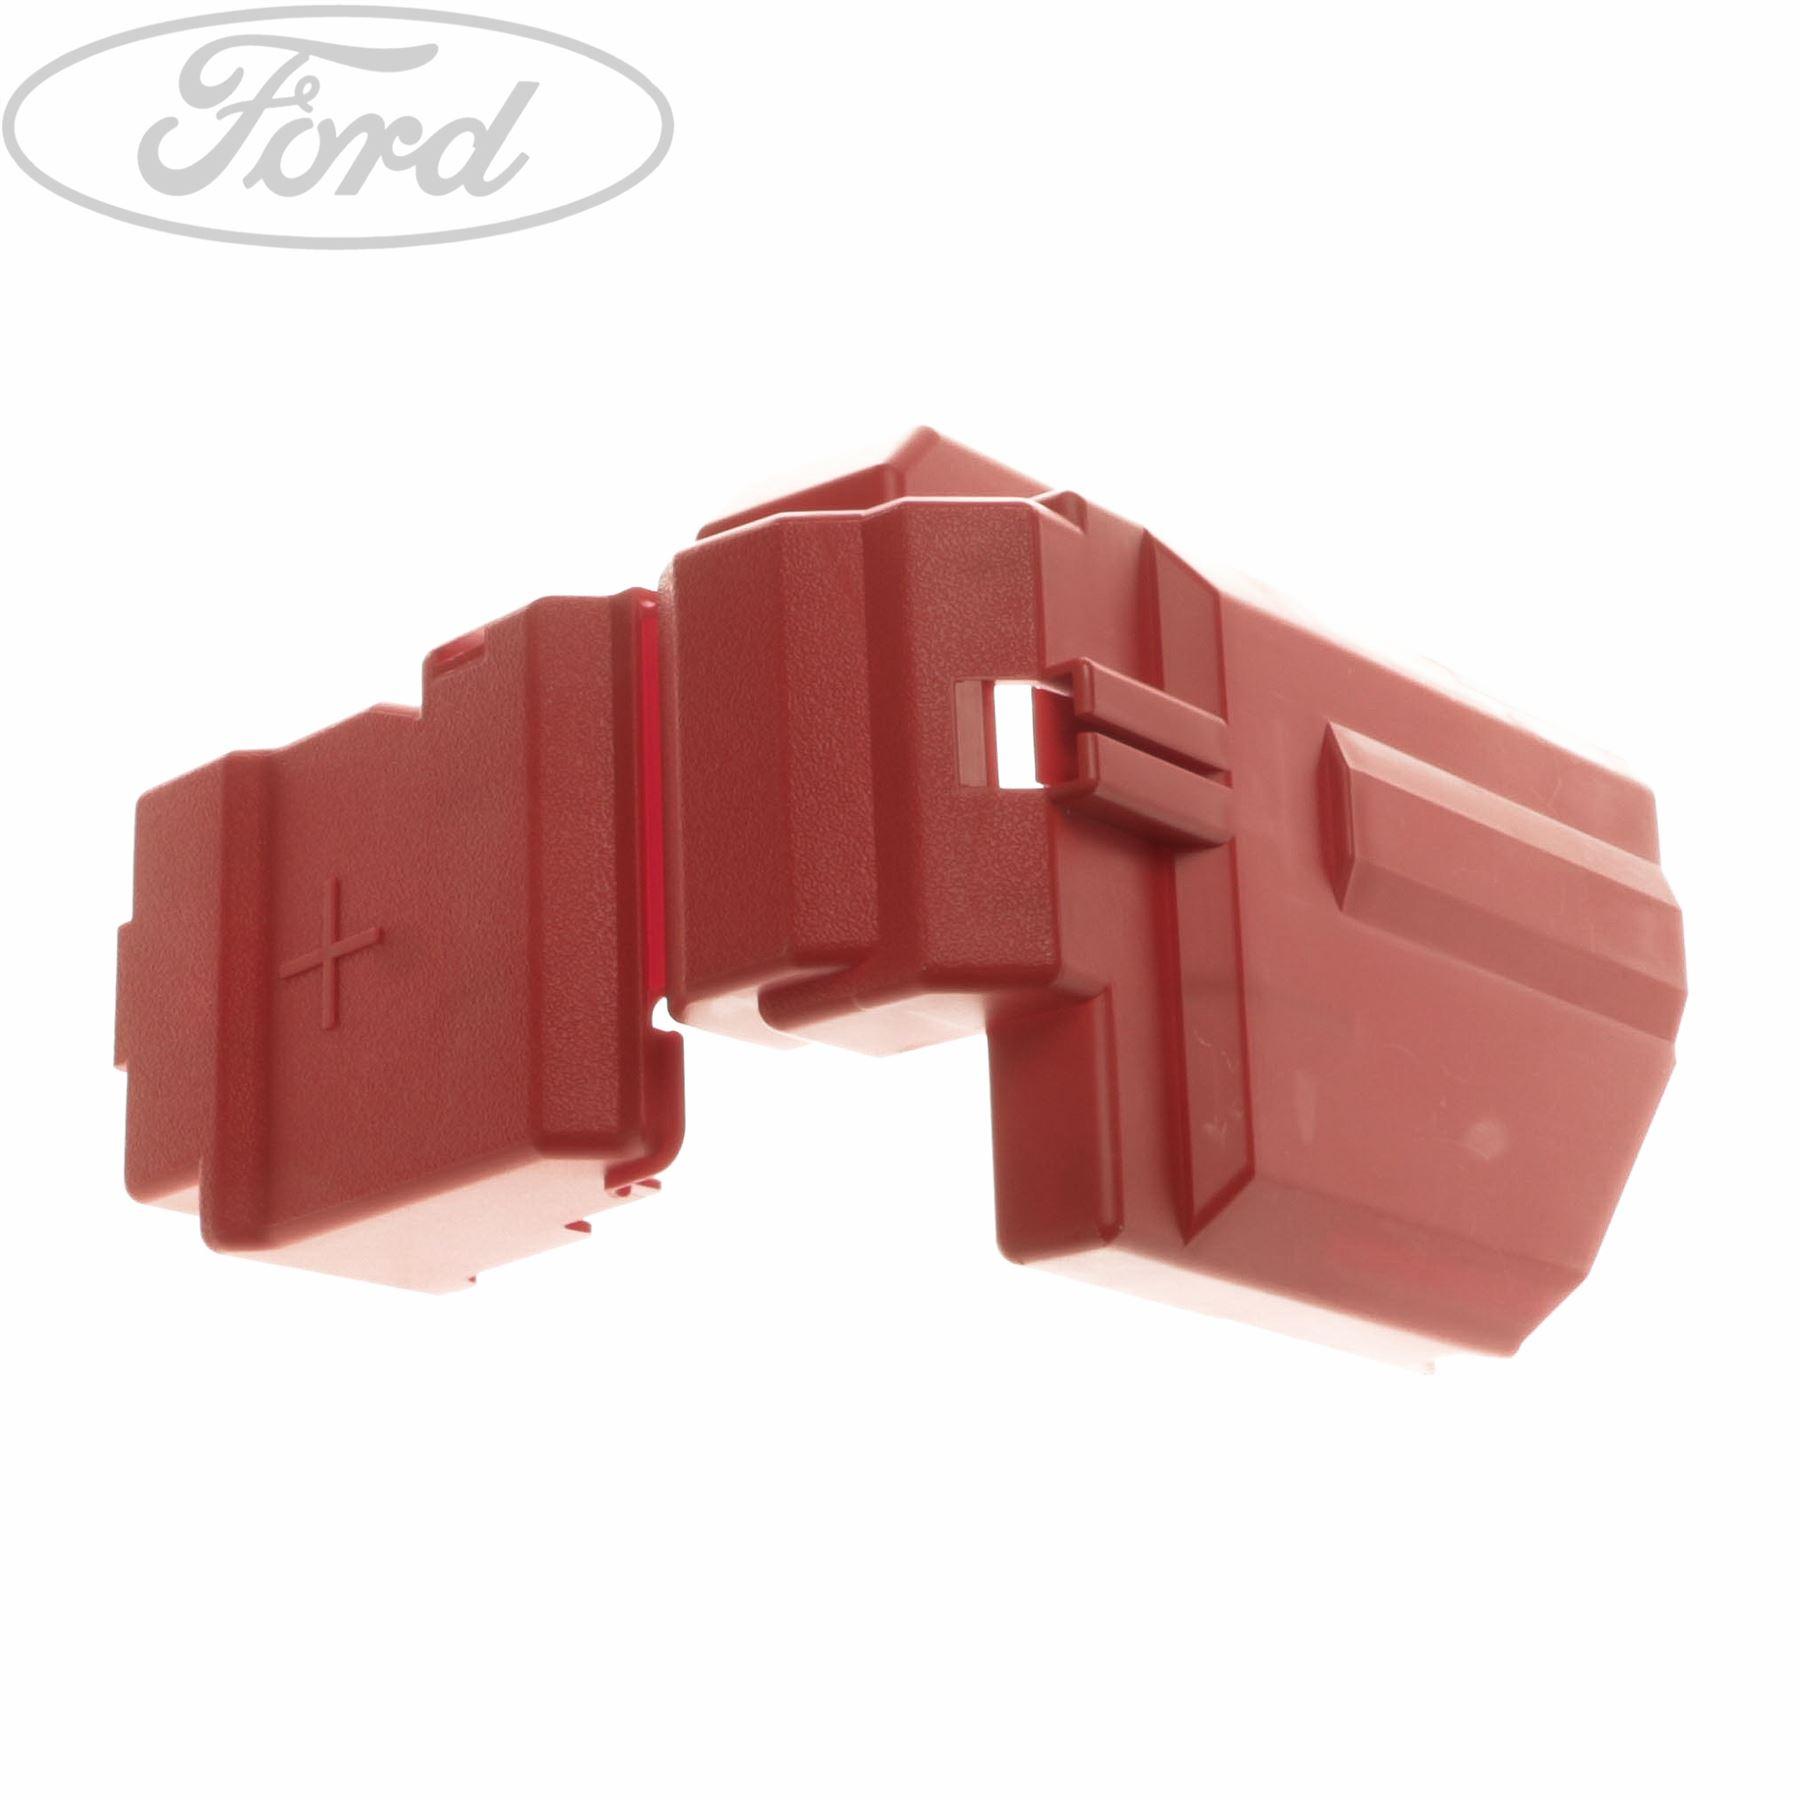 hight resolution of details about genuine ford fiesta mk7 fuse box cover 1832217